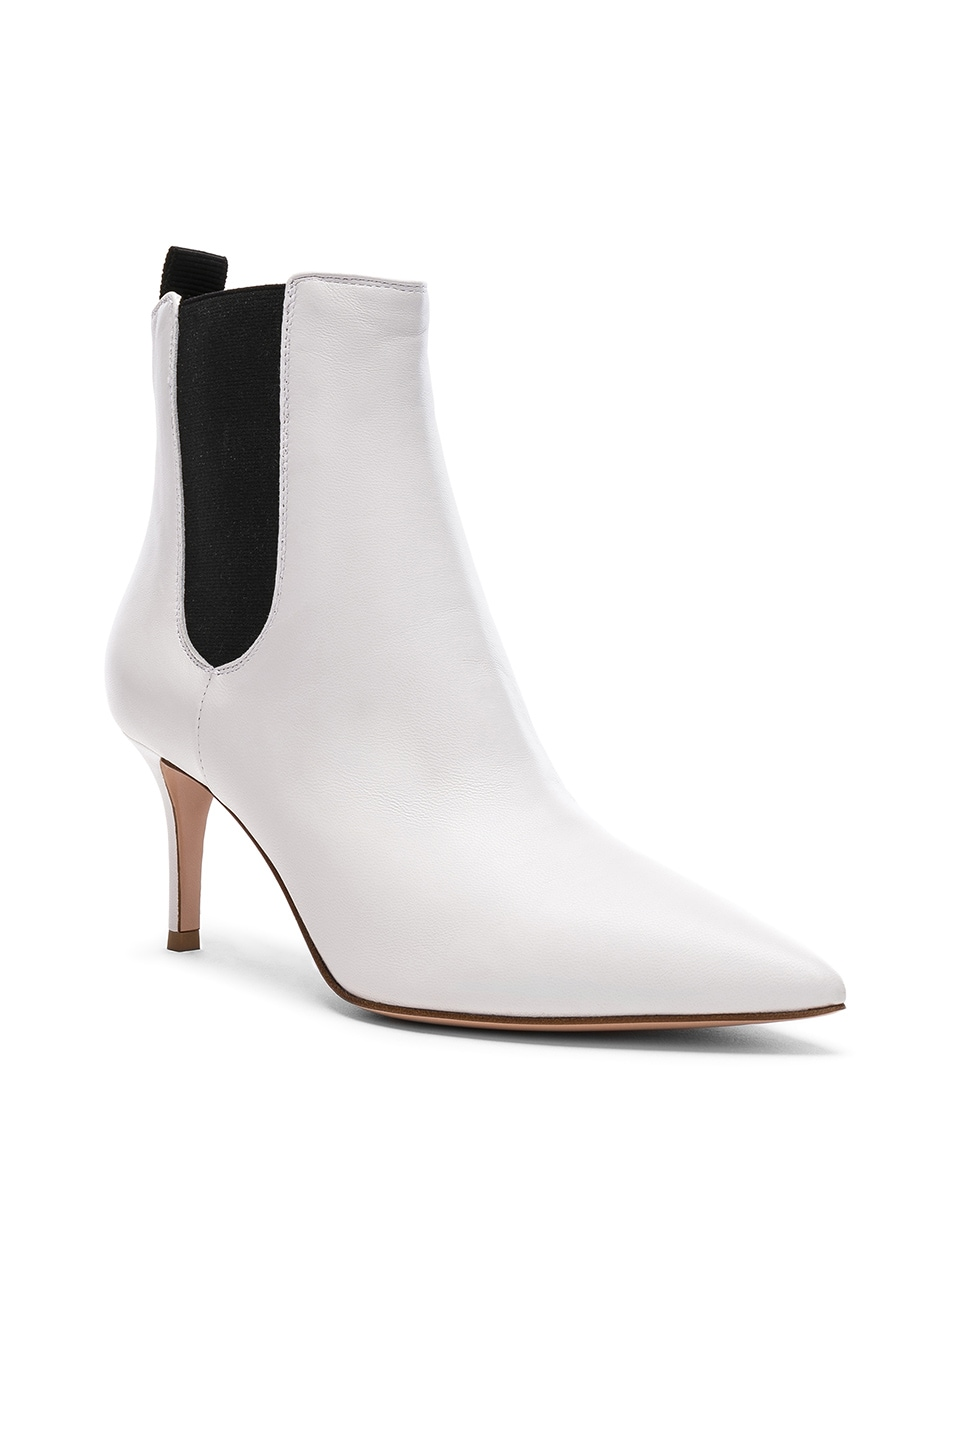 Image 2 of Gianvito Rossi for FWRD Leather Evan Stiletto Ankle Boots in White & Black